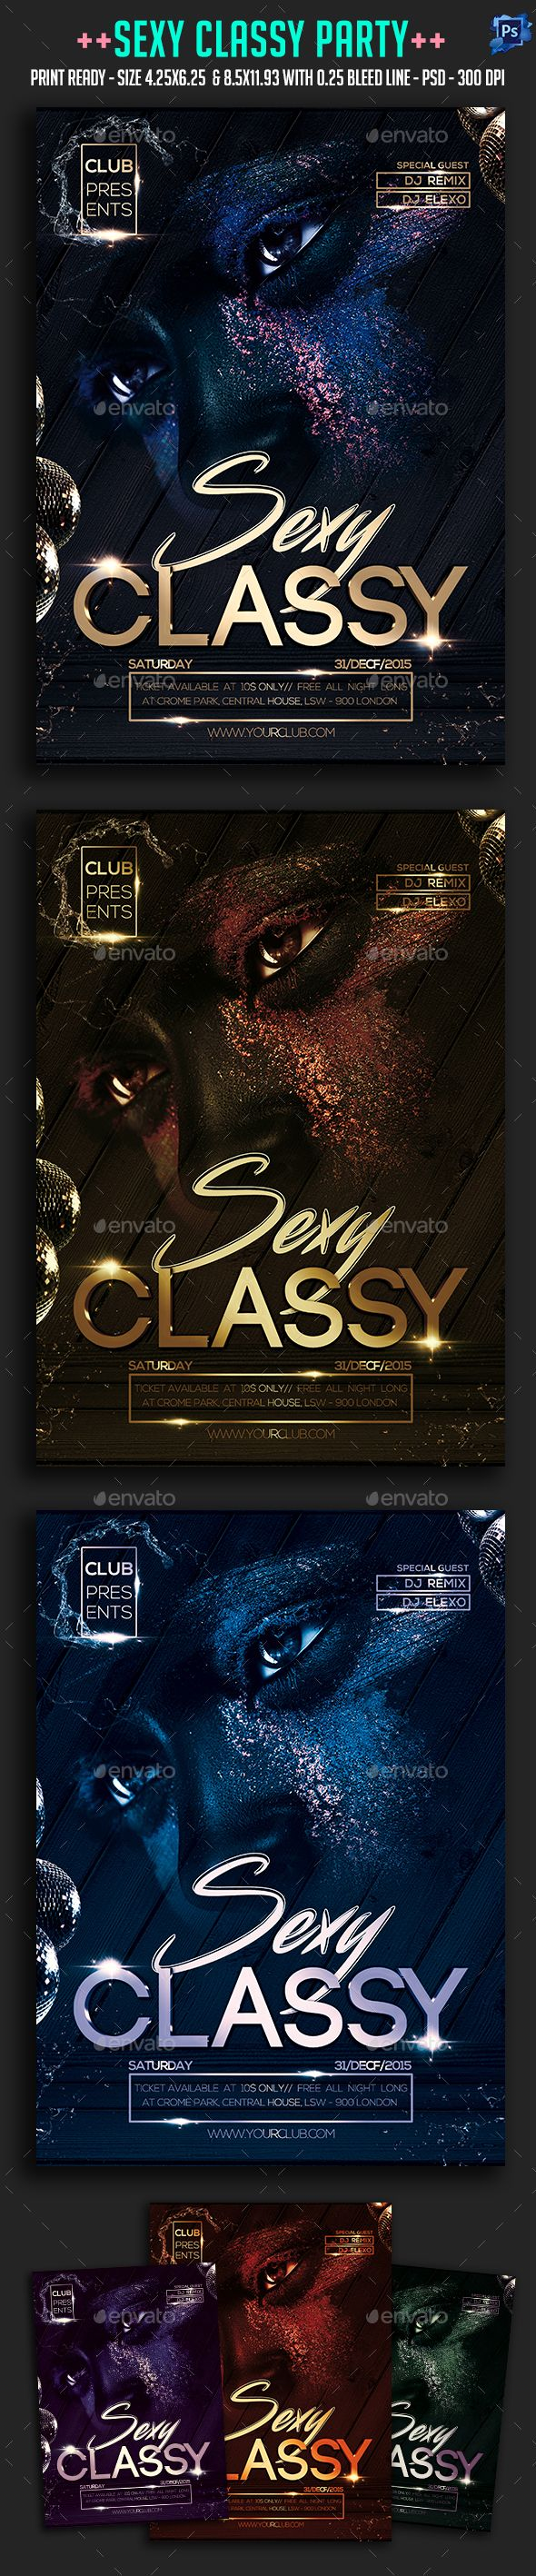 Sexy Classy Party Flyer | Casino Infographics